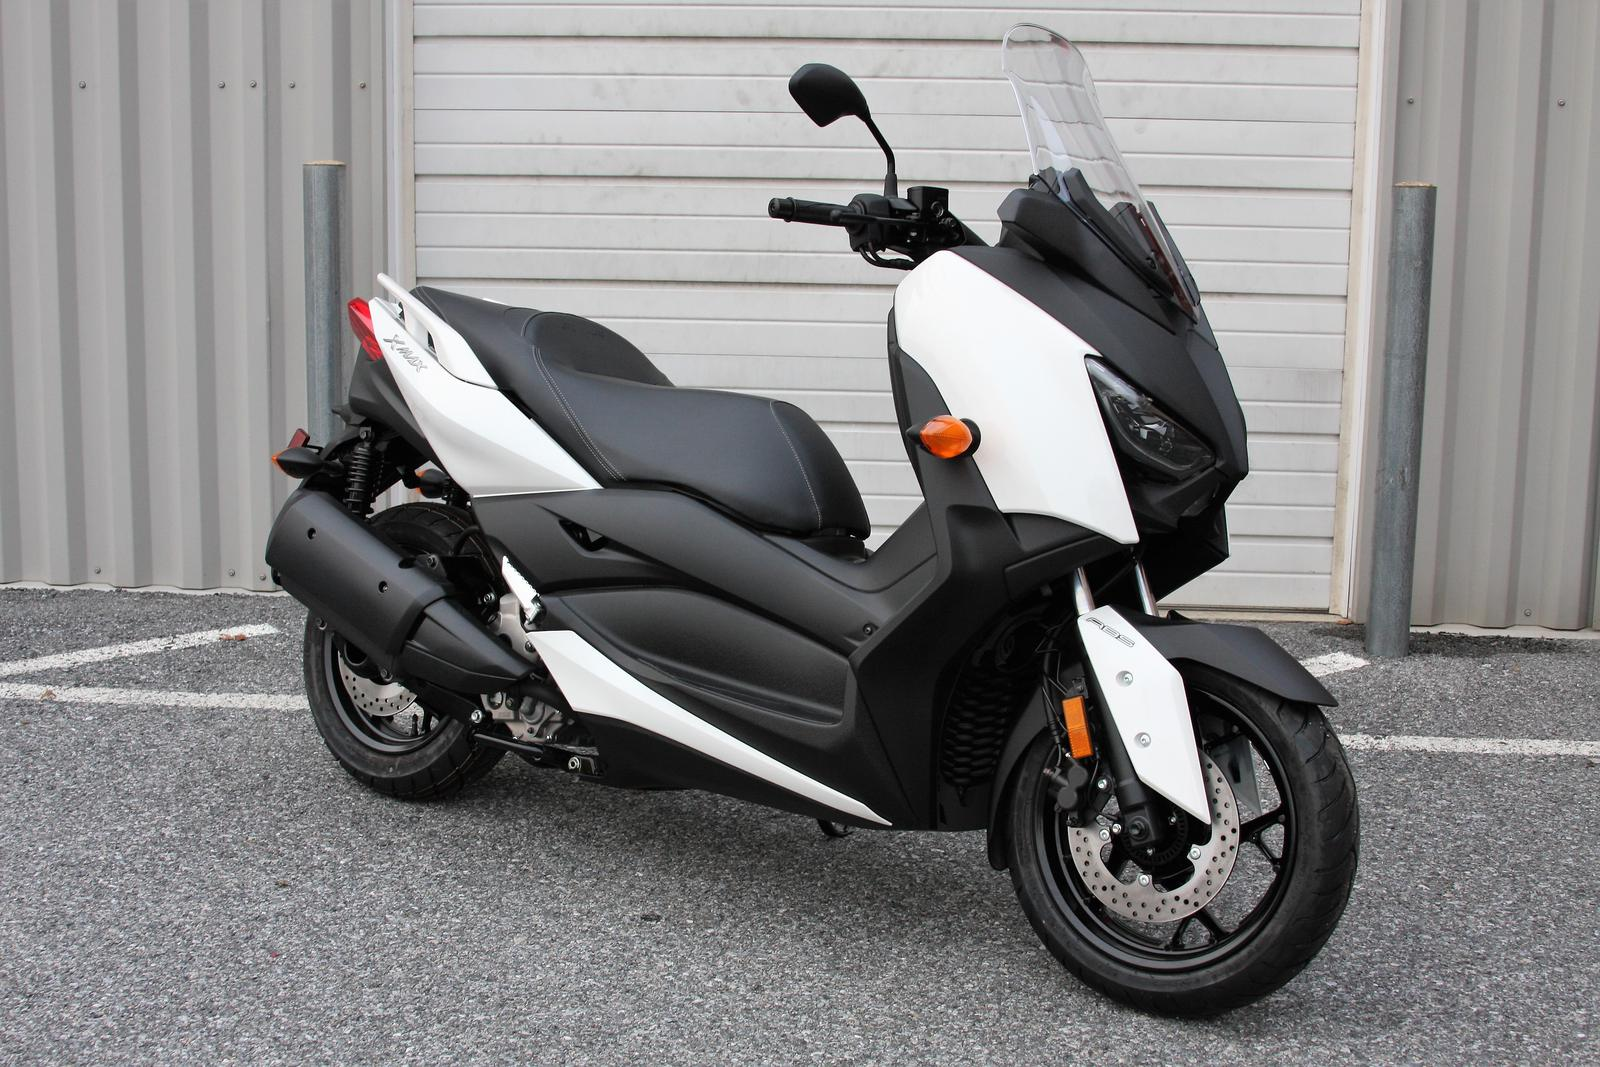 2018 Yamaha XMAX for sale in YORK, PA. AMS Action Motorsports YORK ...